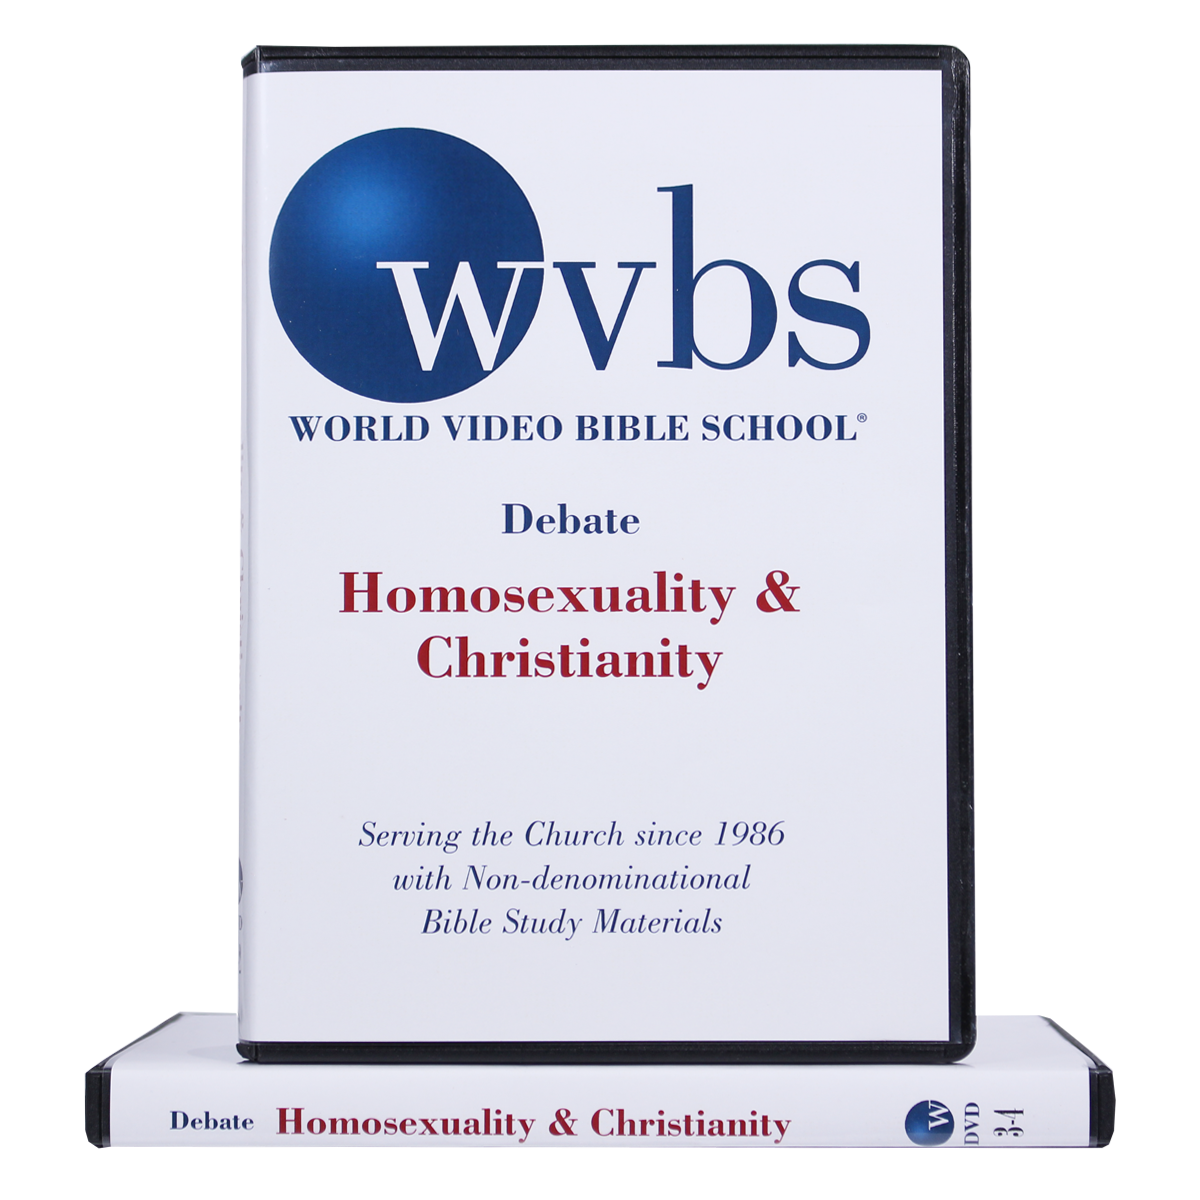 Christian debate over homosexuality